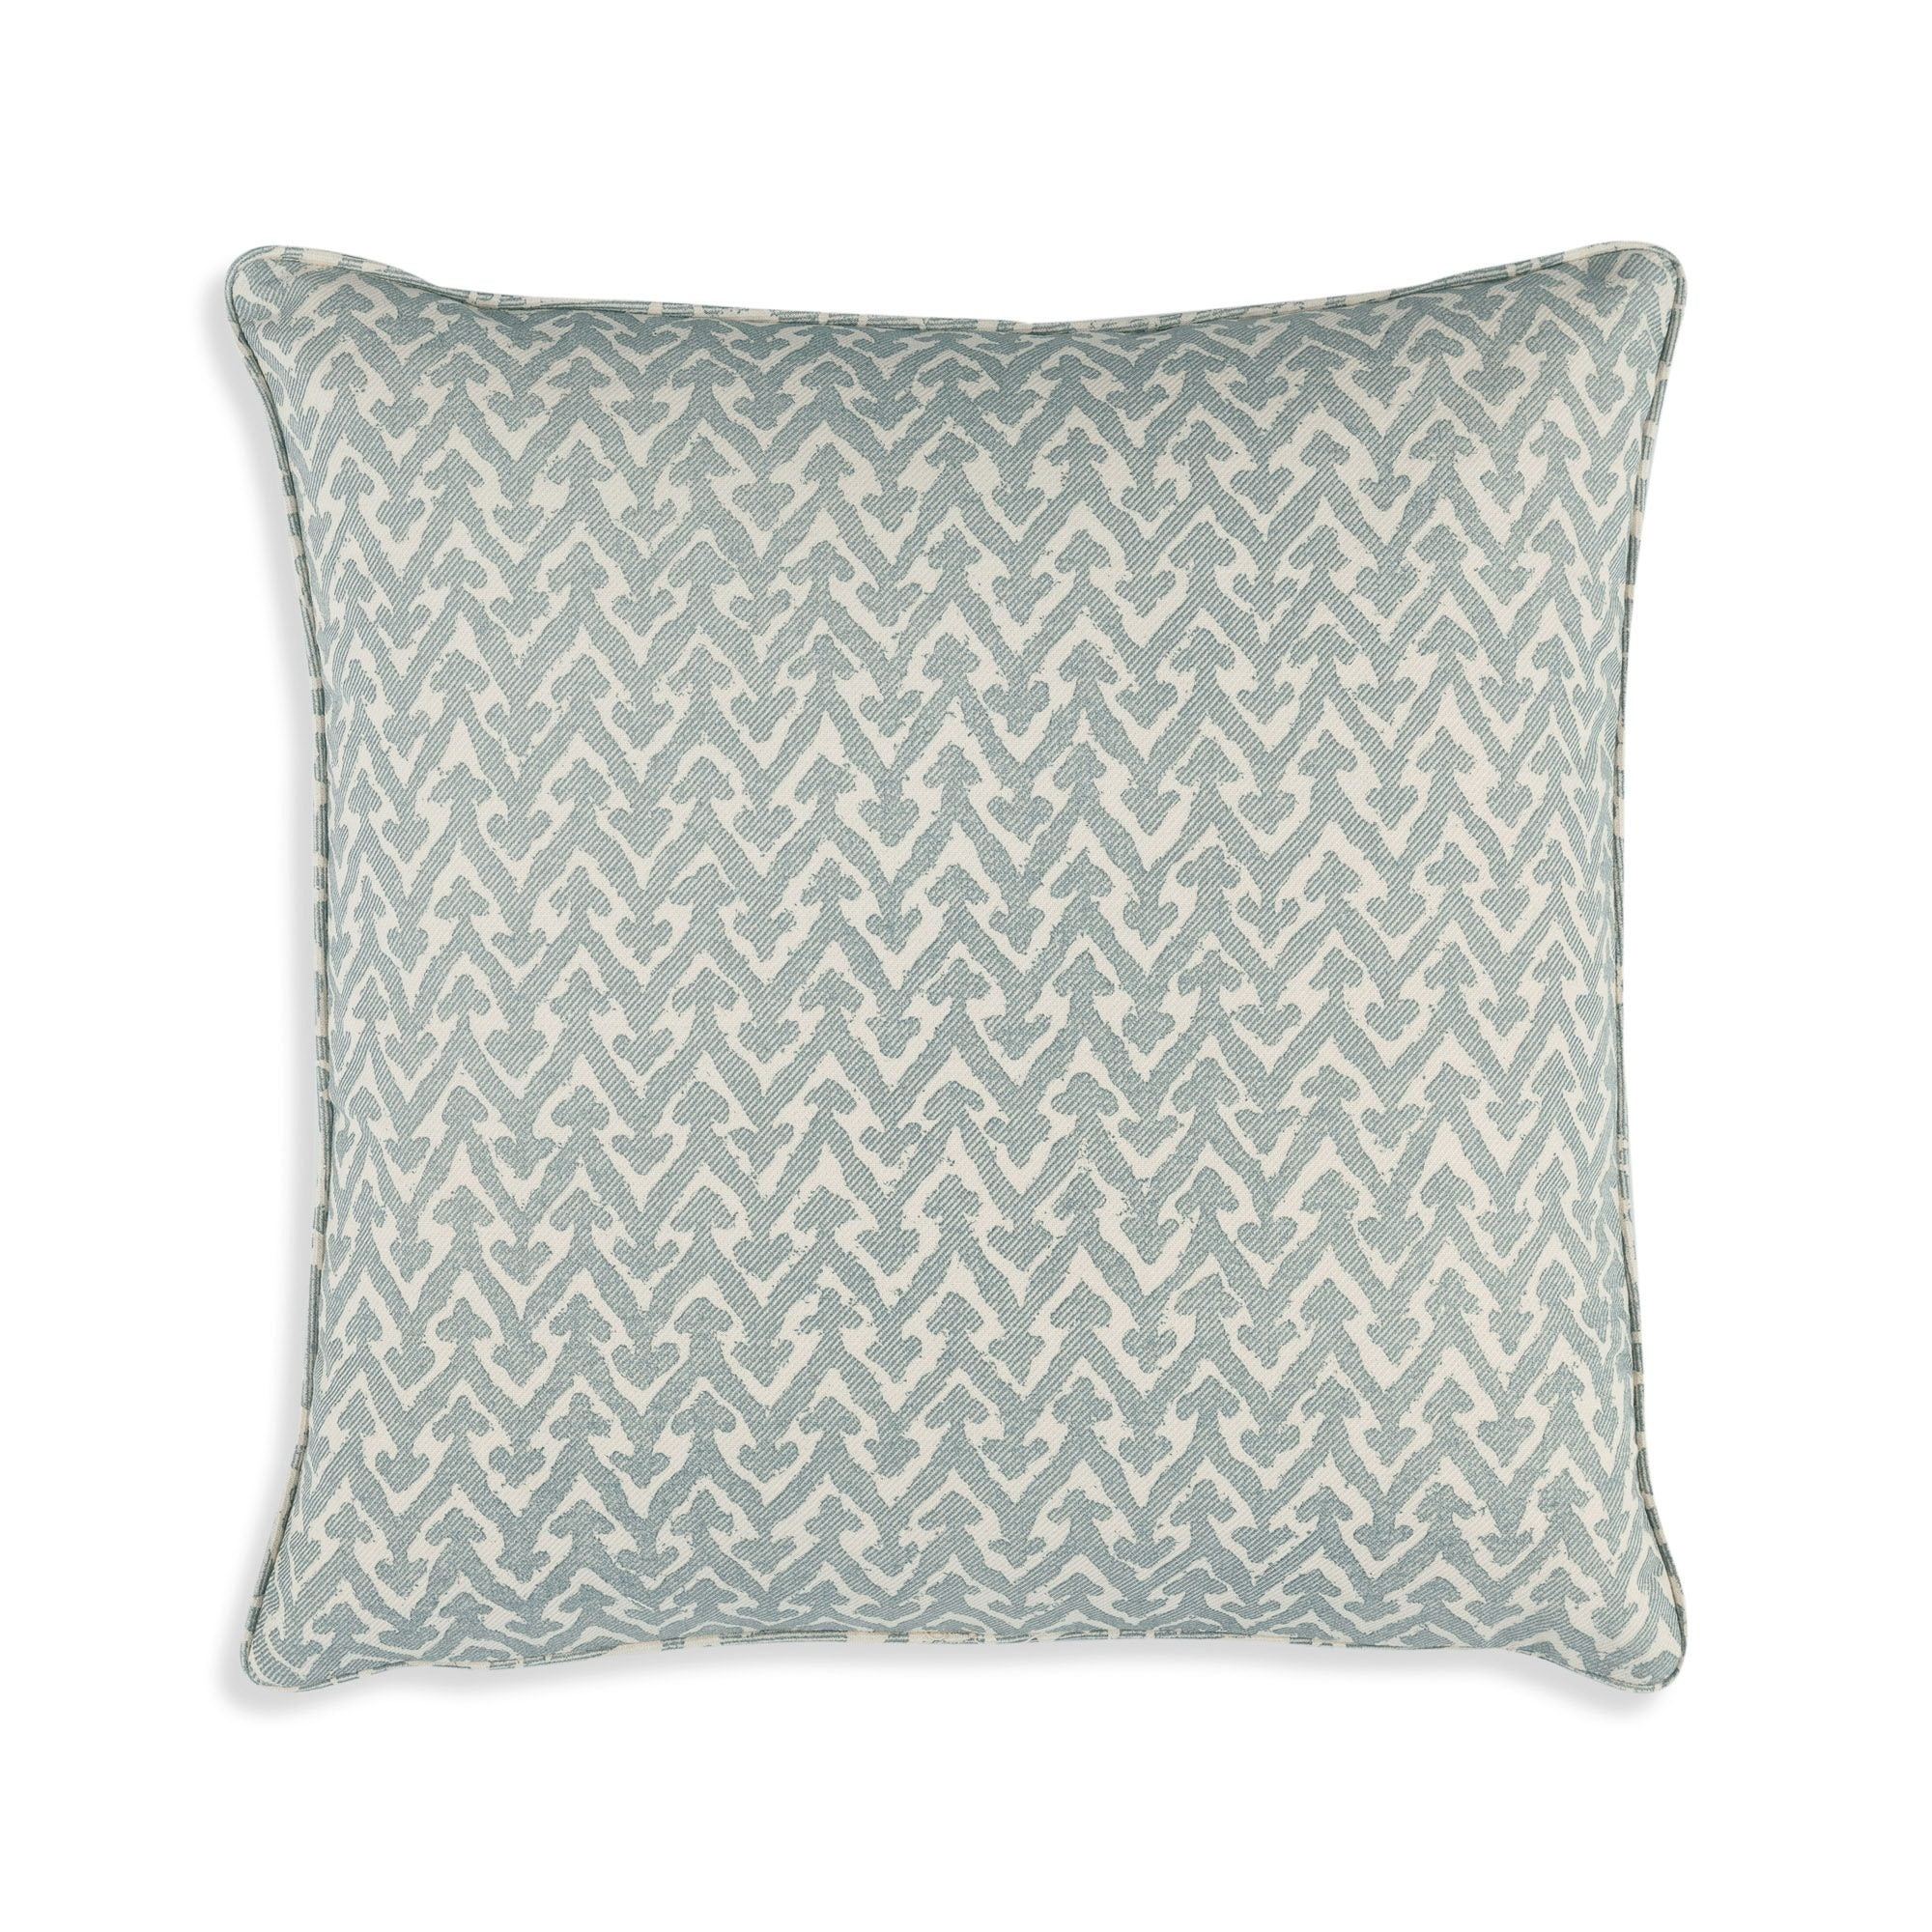 Fermoie Cushion in Light Blue Rabanna